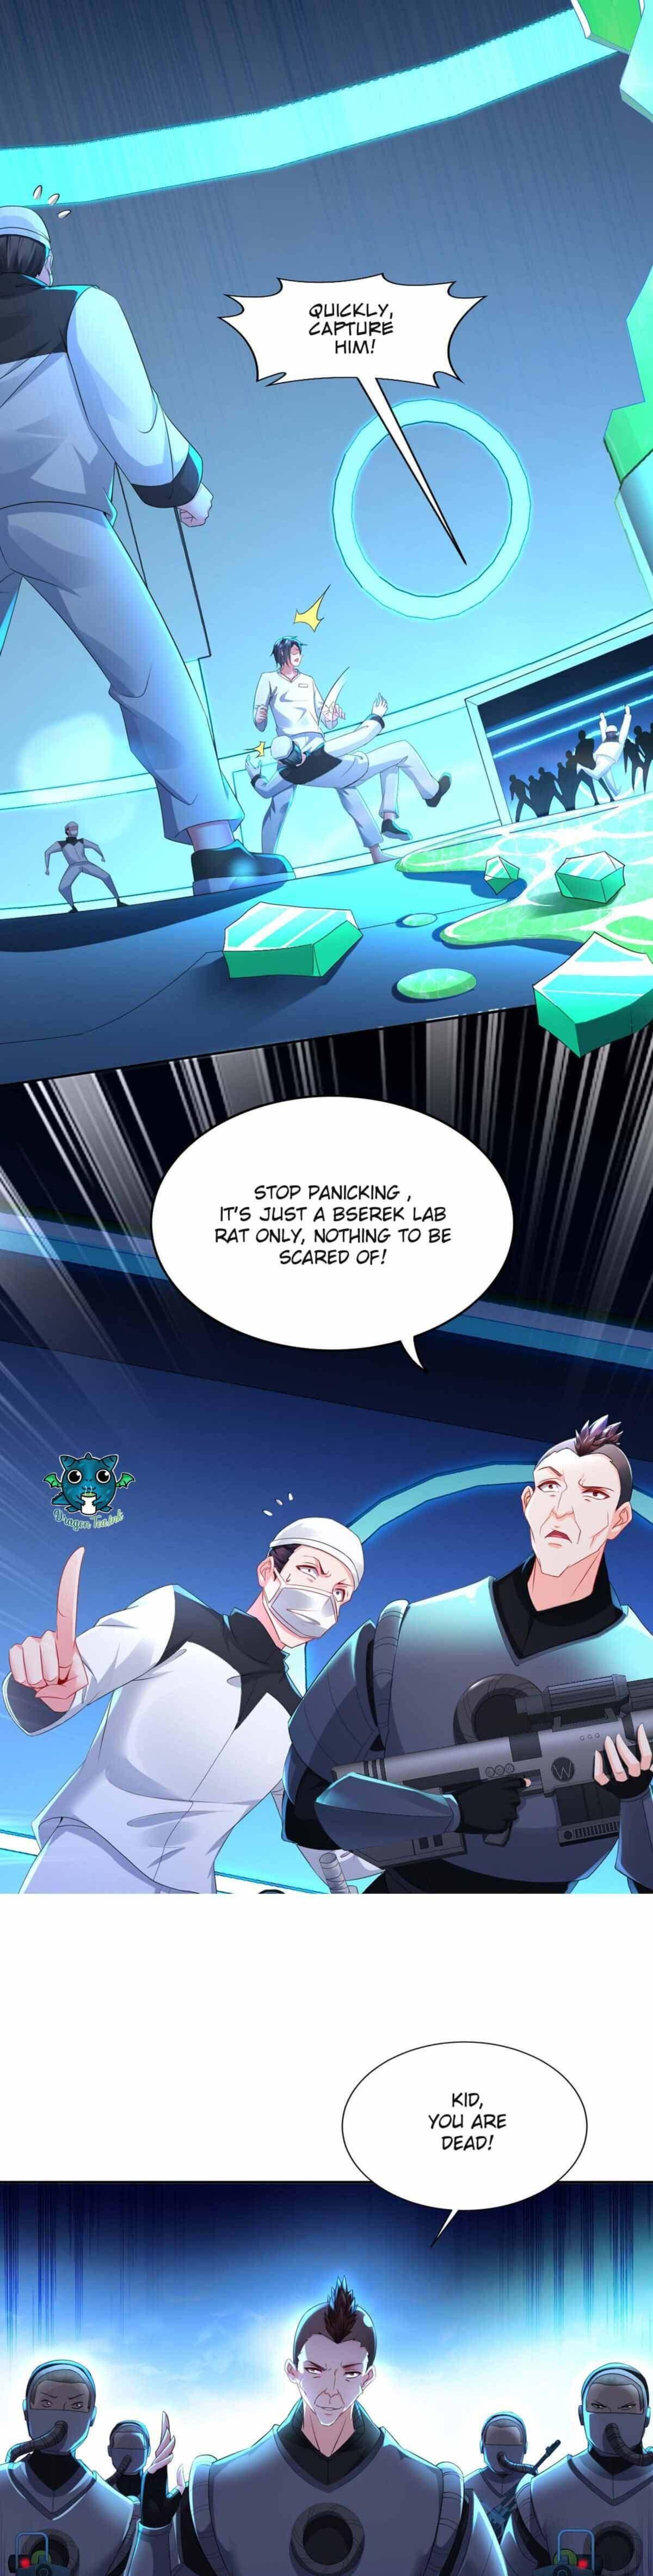 From That Day Onwards, Plants Becomes Super God! - chapter 1-eng-li